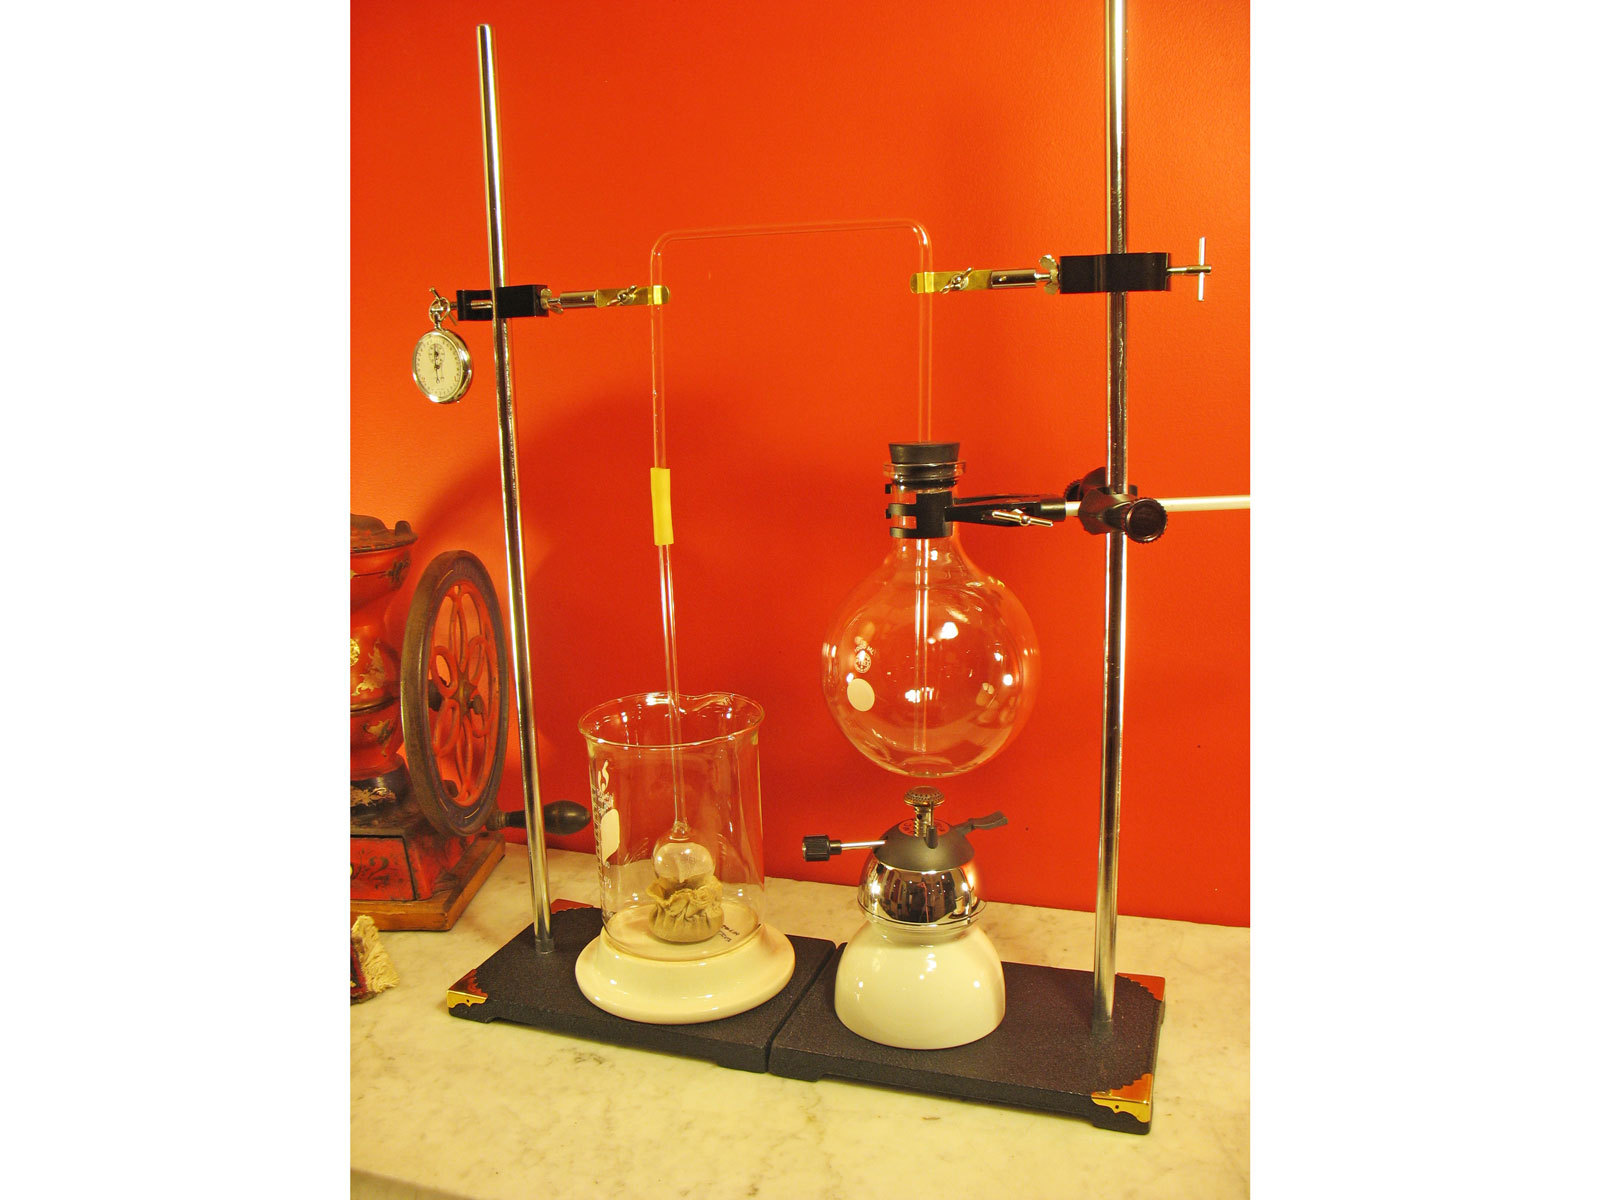 The Florence Siphon